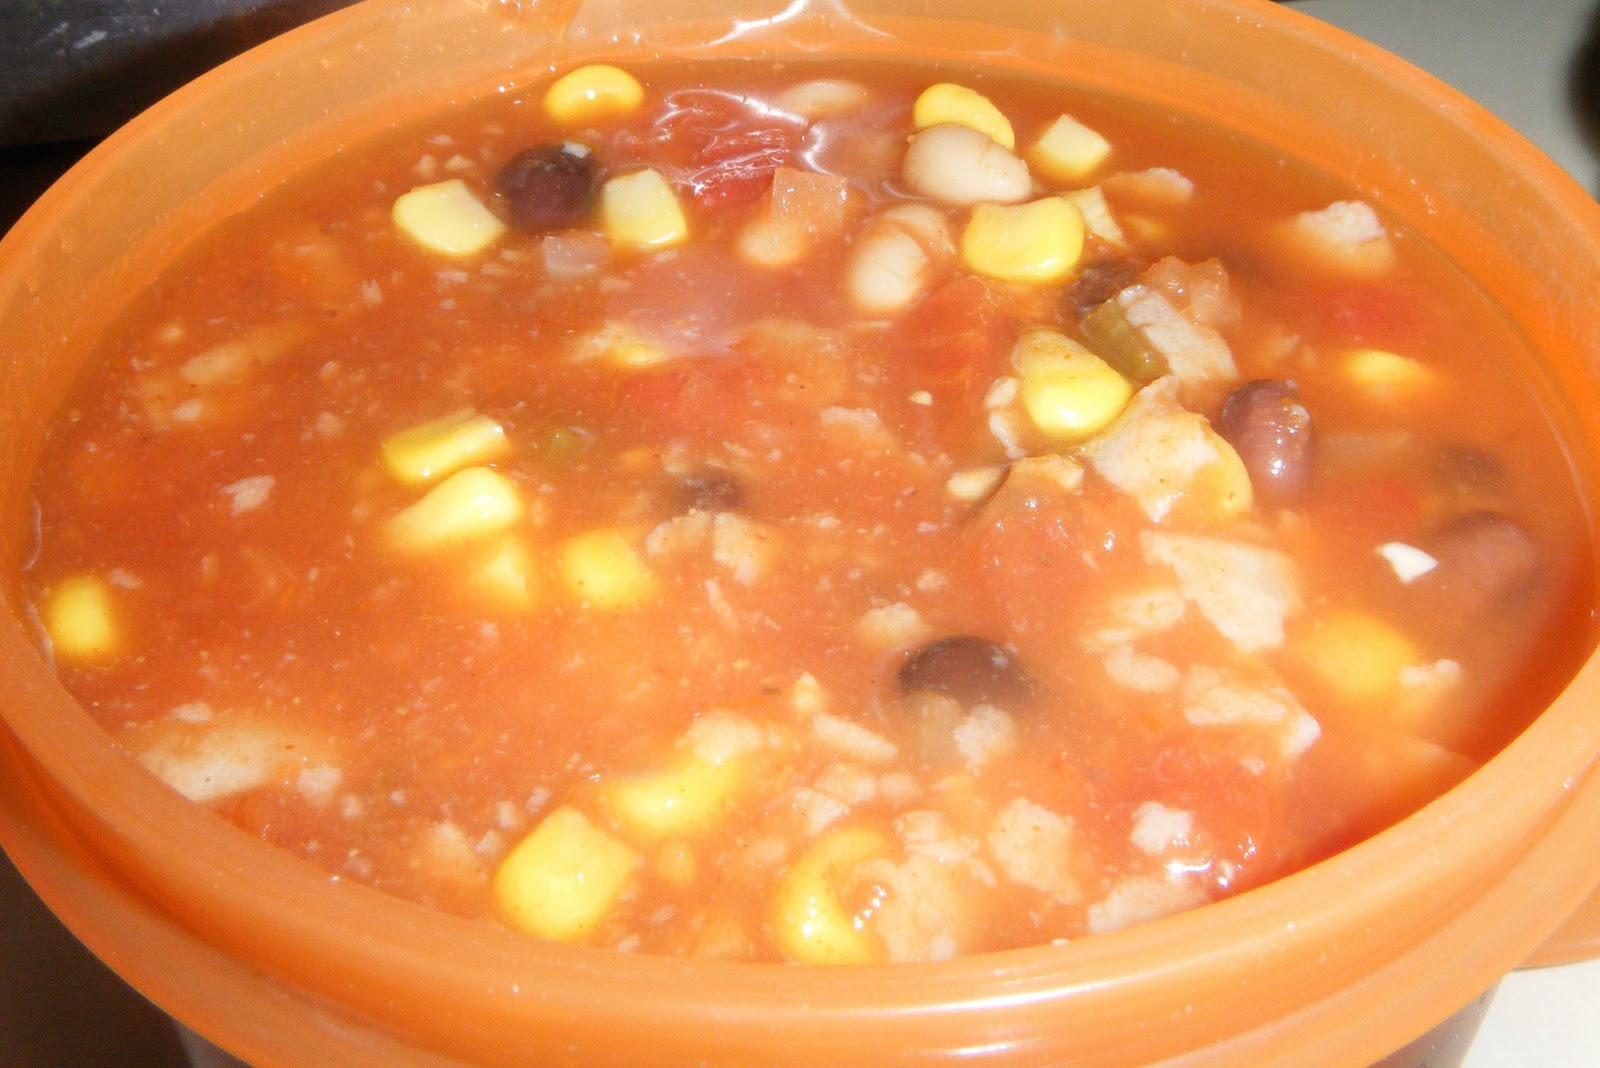 Out Of The Box Into The Kitchen: Vegetarian Tortilla Soup